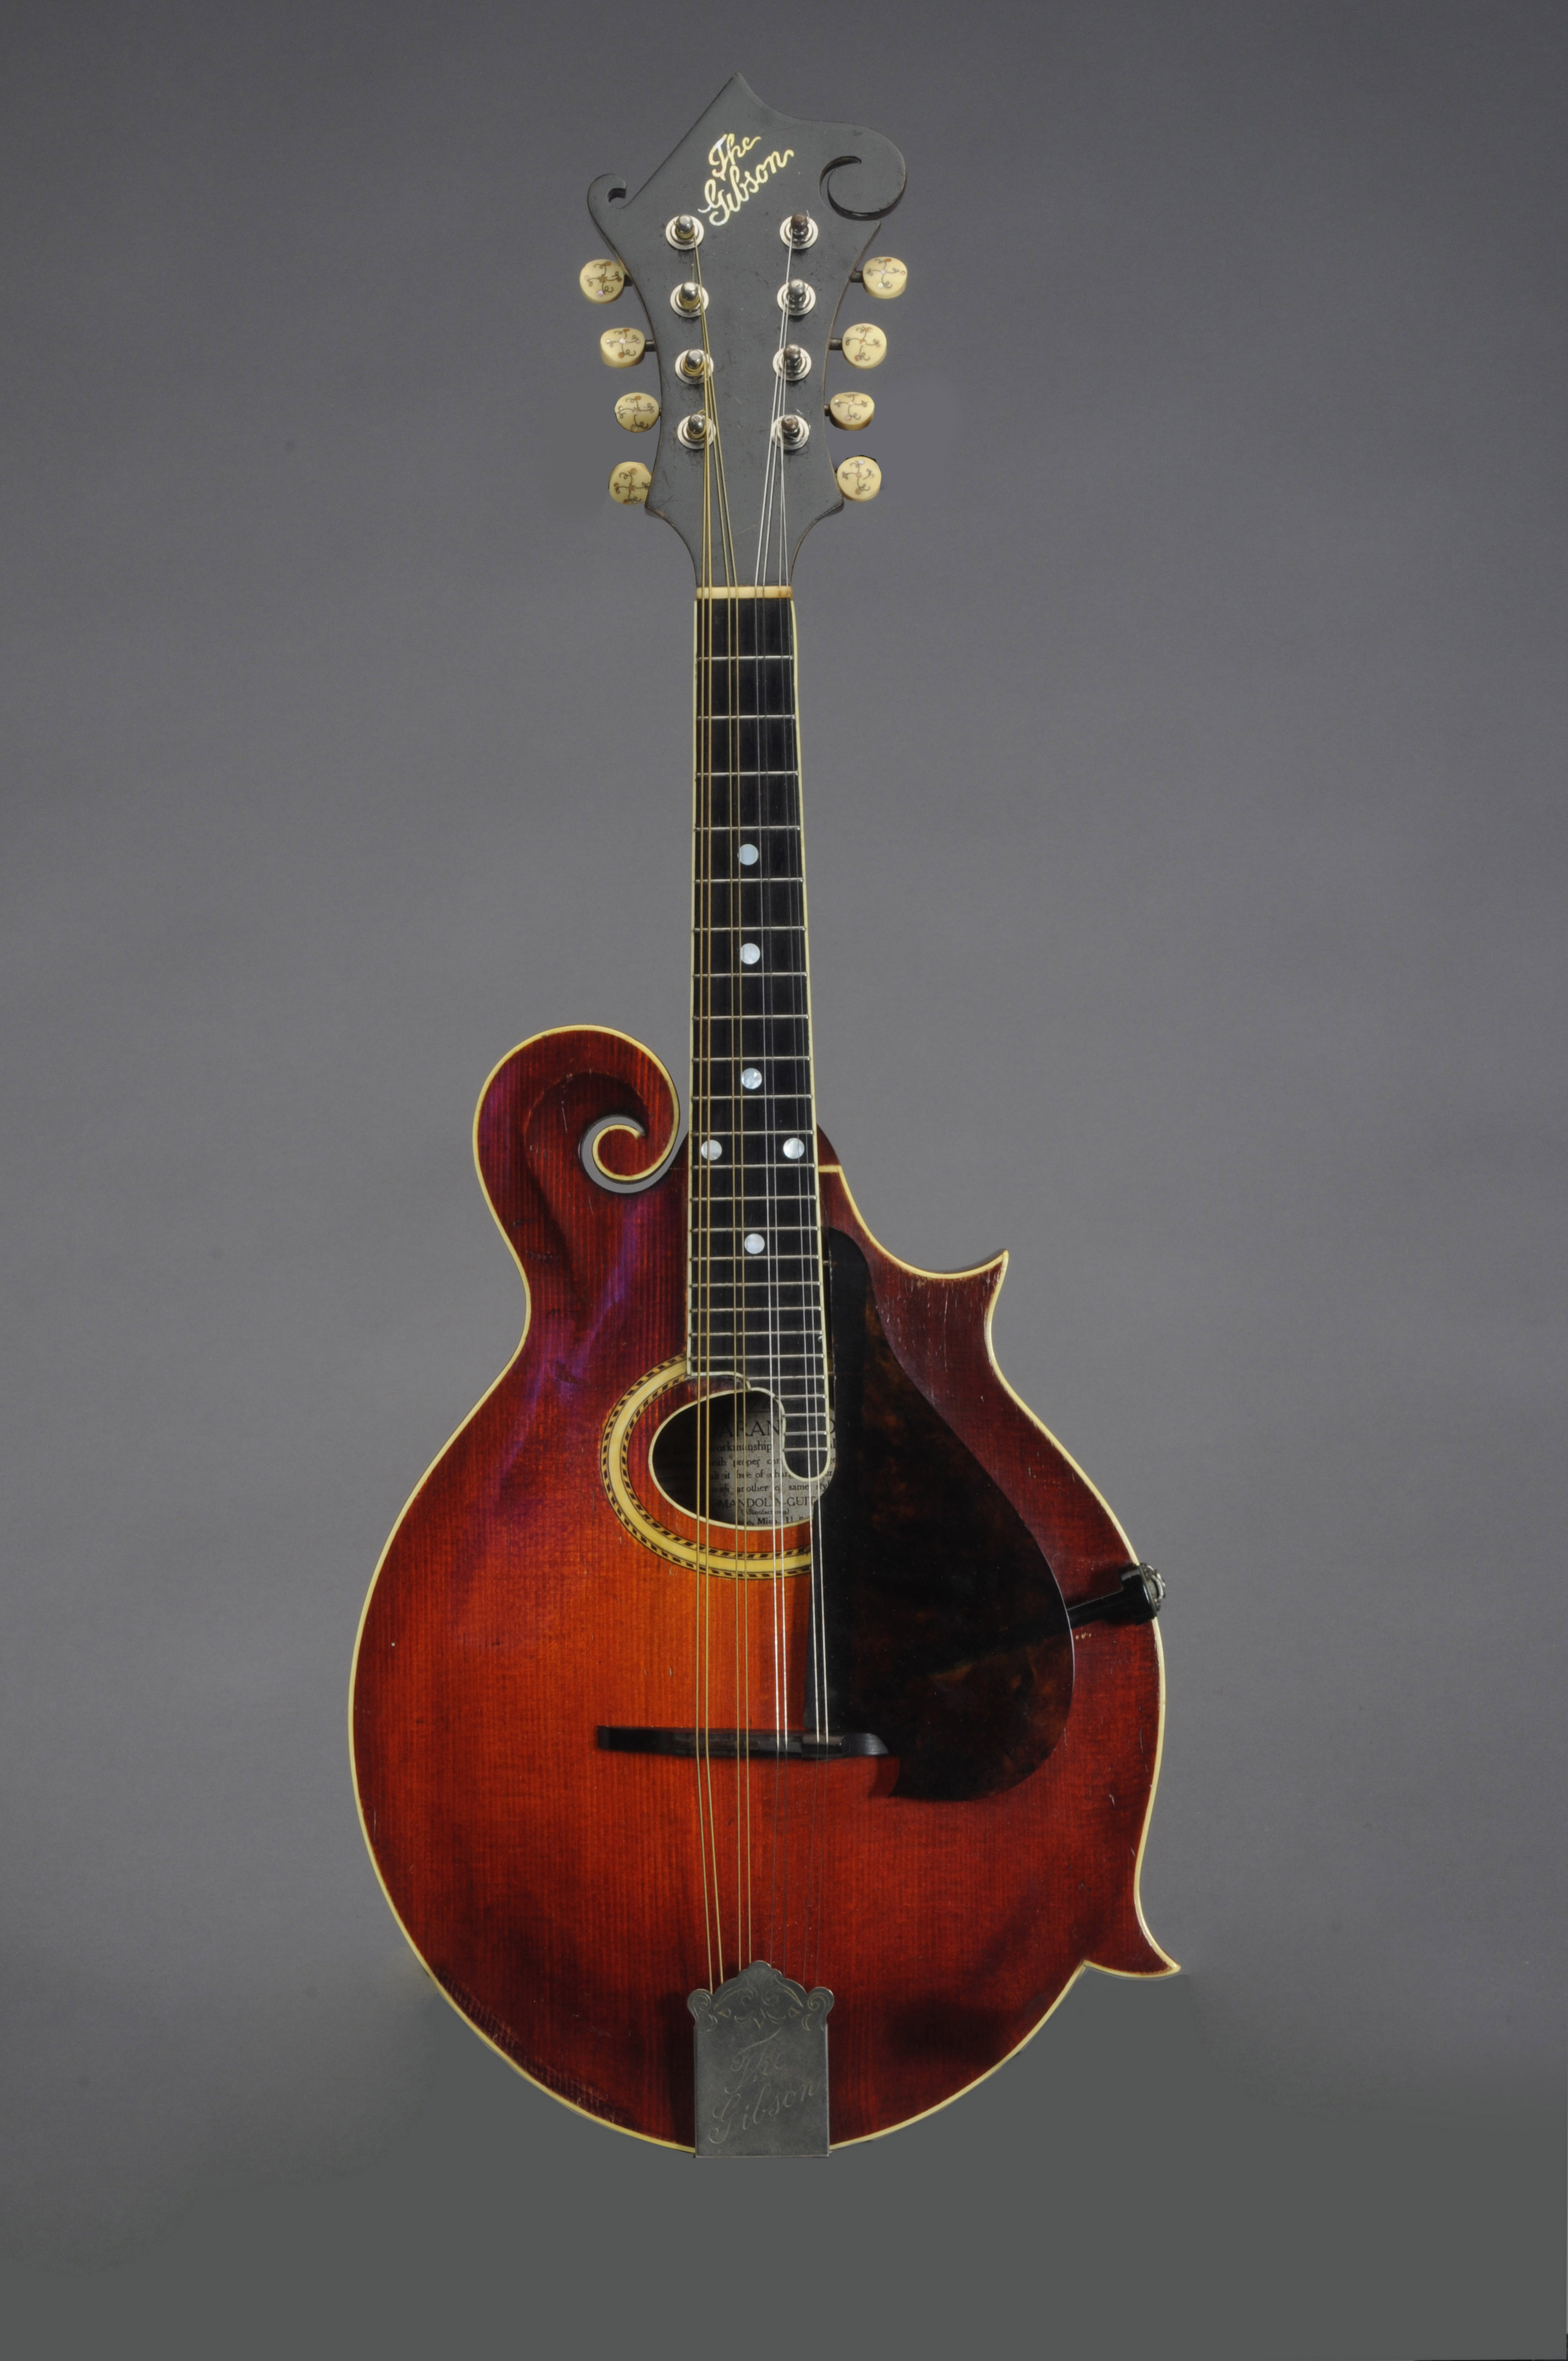 THE GIBSON MANDOLIN-GUITAR COMPANY